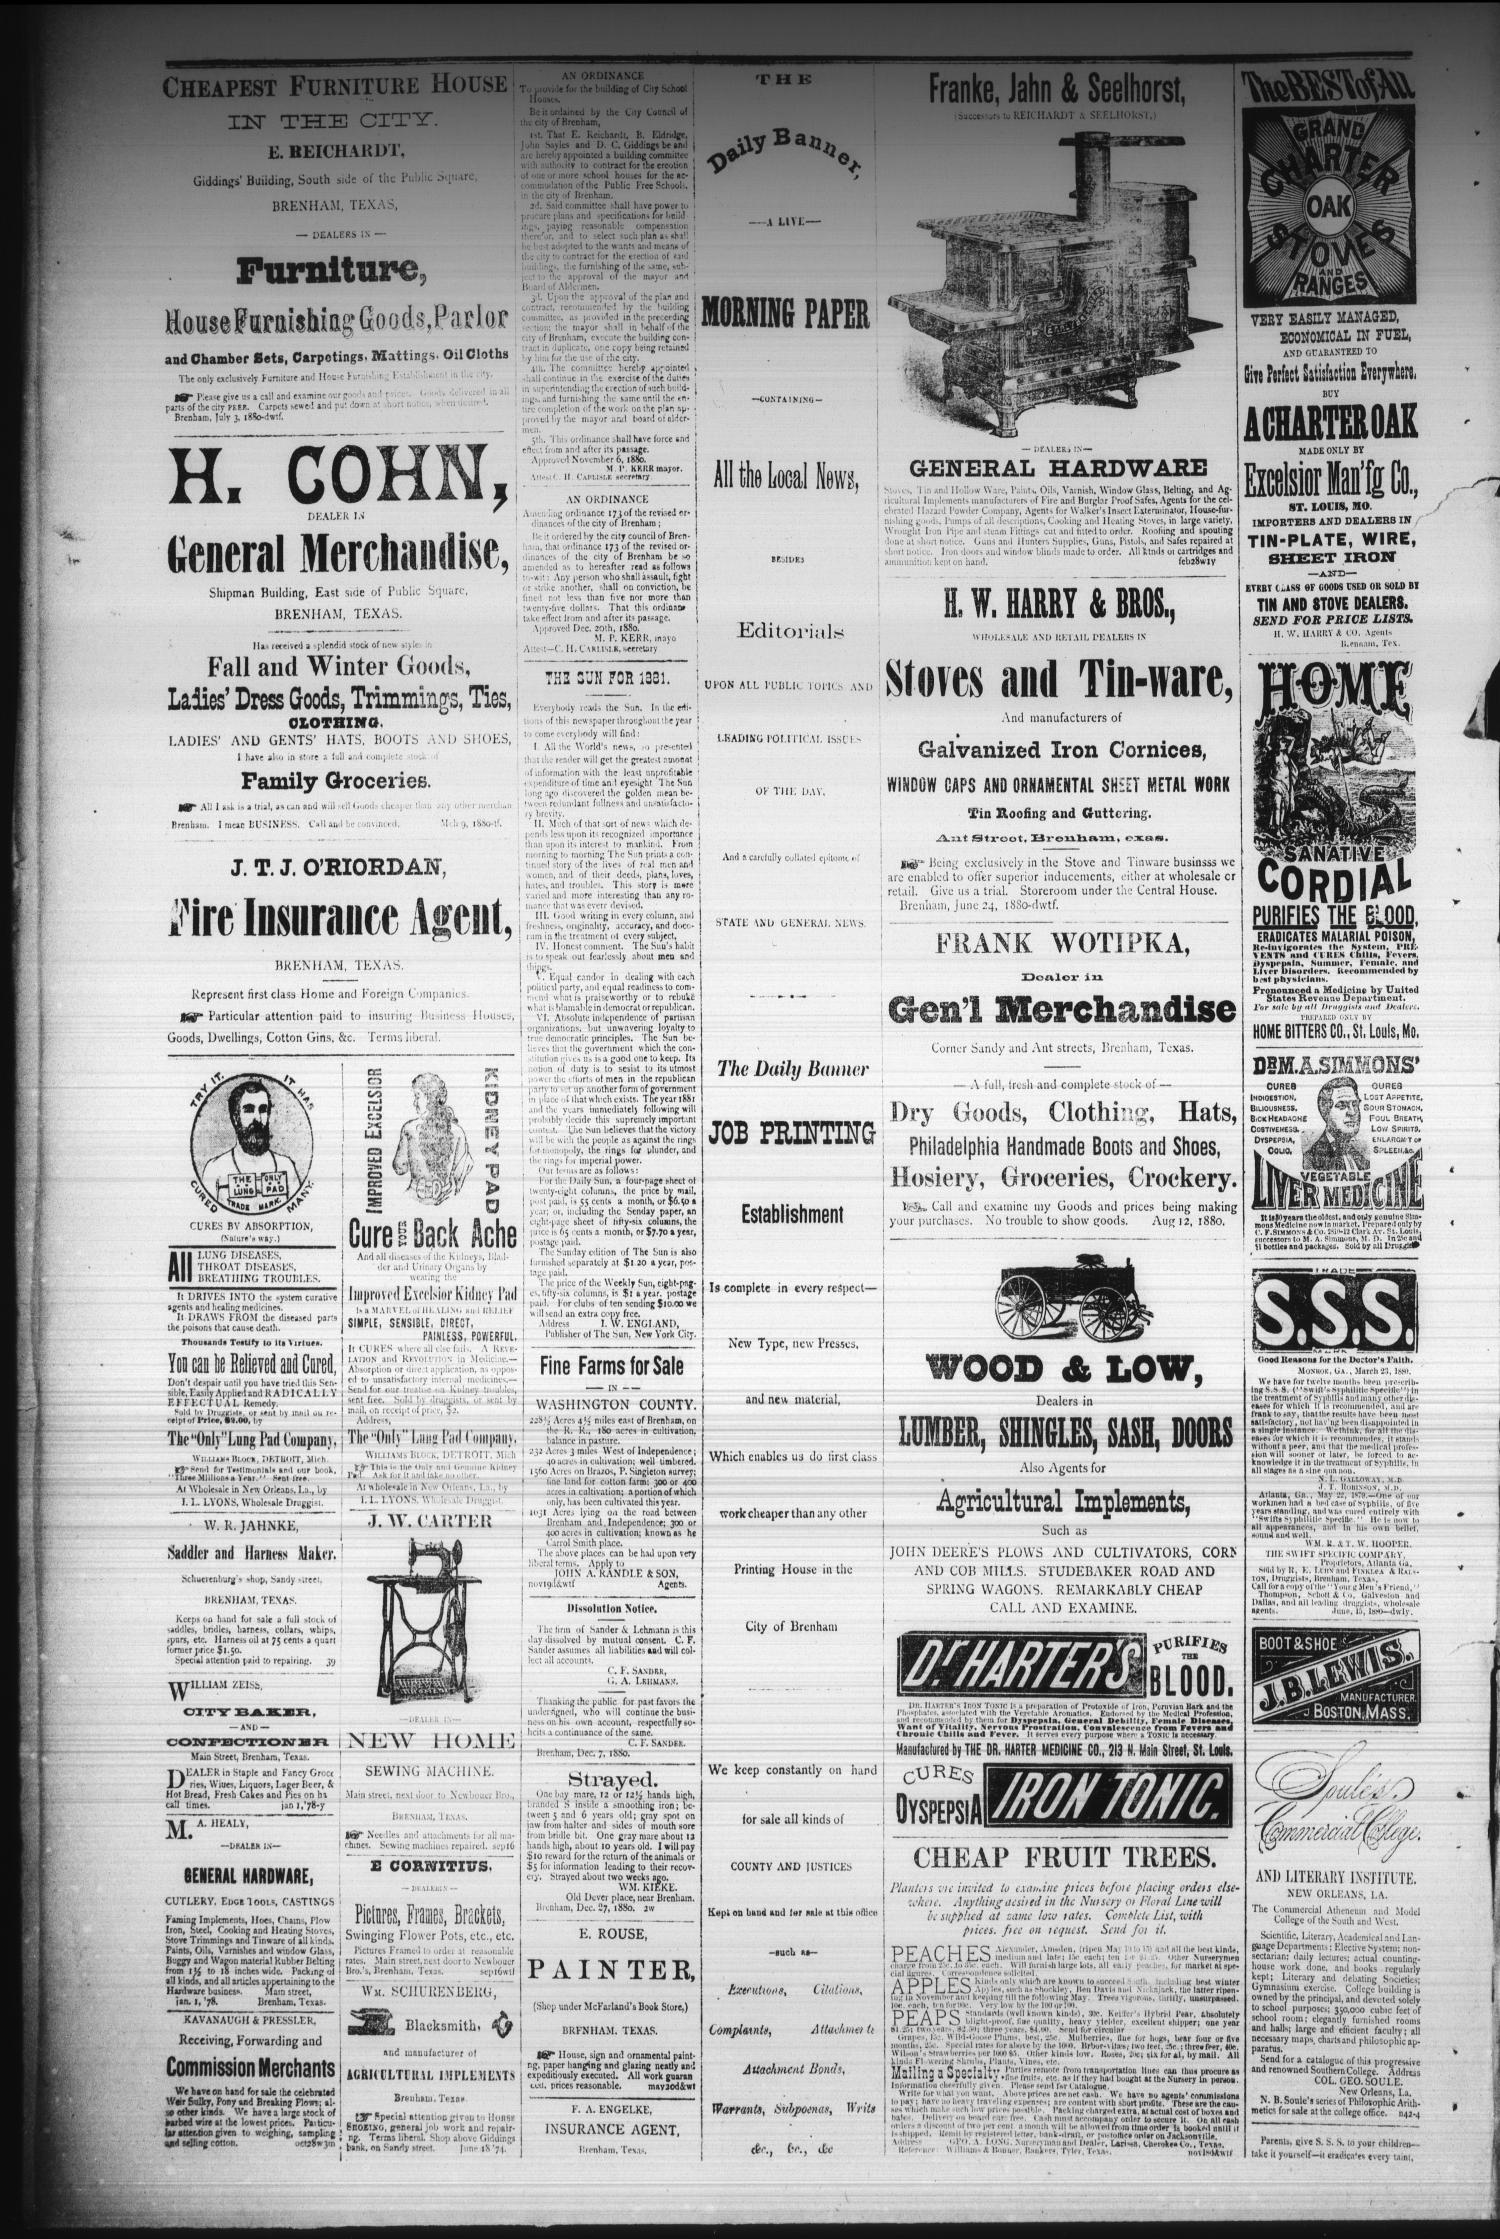 Brenham Daily Banner. (Brenham, Tex.), Vol. 6, No. 16, Ed. 1 Wednesday, January 19, 1881                                                                                                      [Sequence #]: 4 of 4